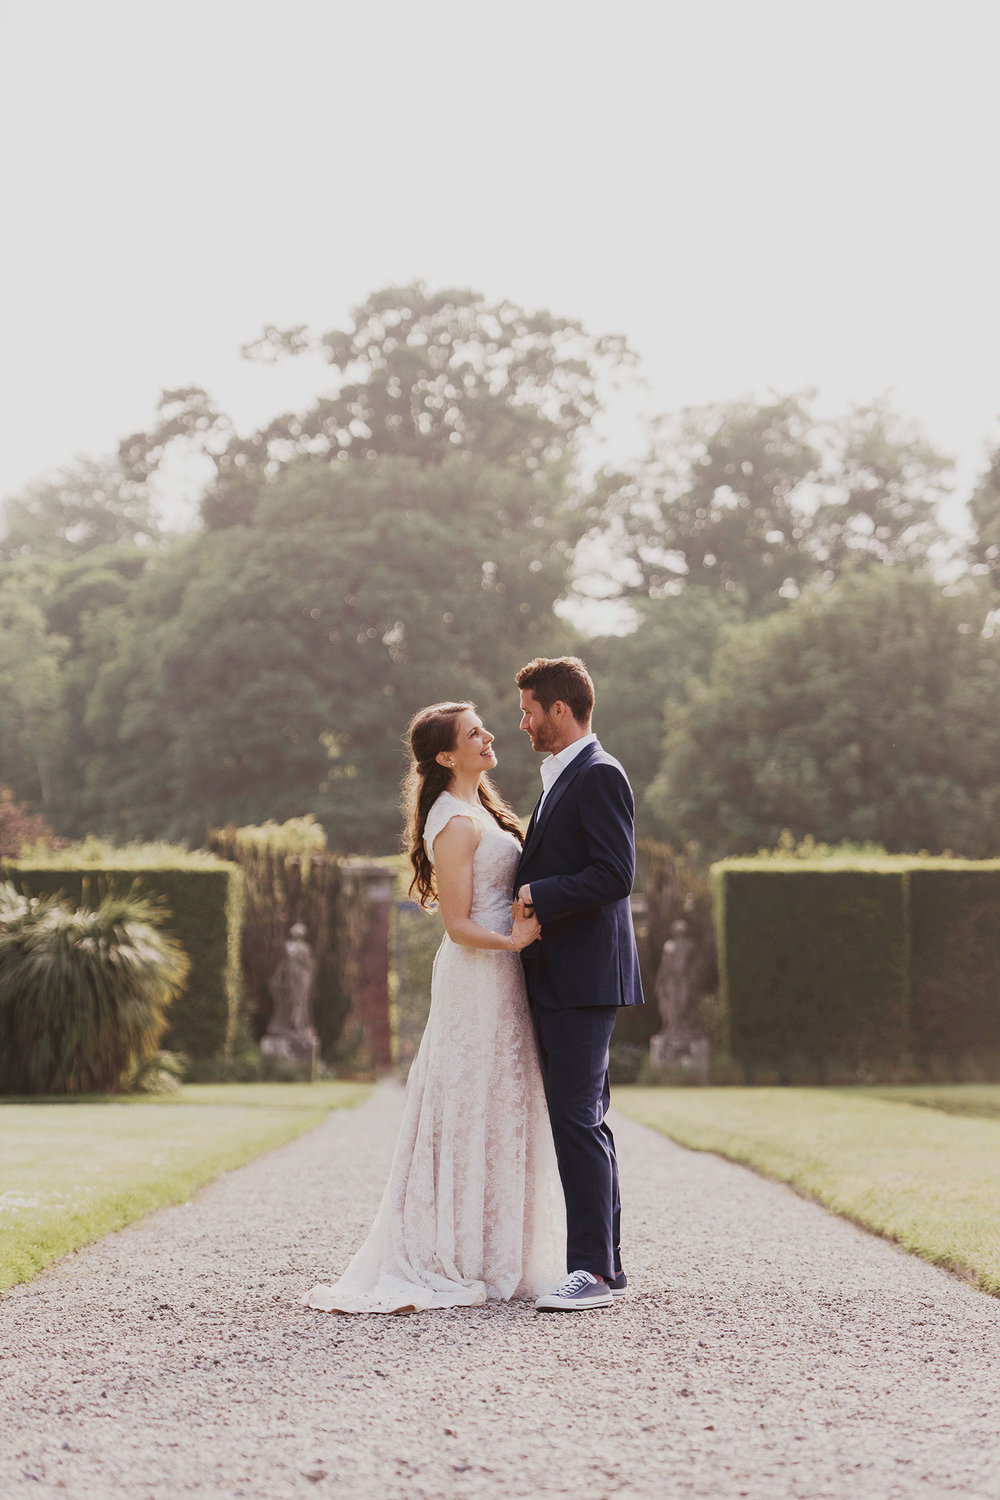 Joanna & Robert - Kilruddery House, Wicklow